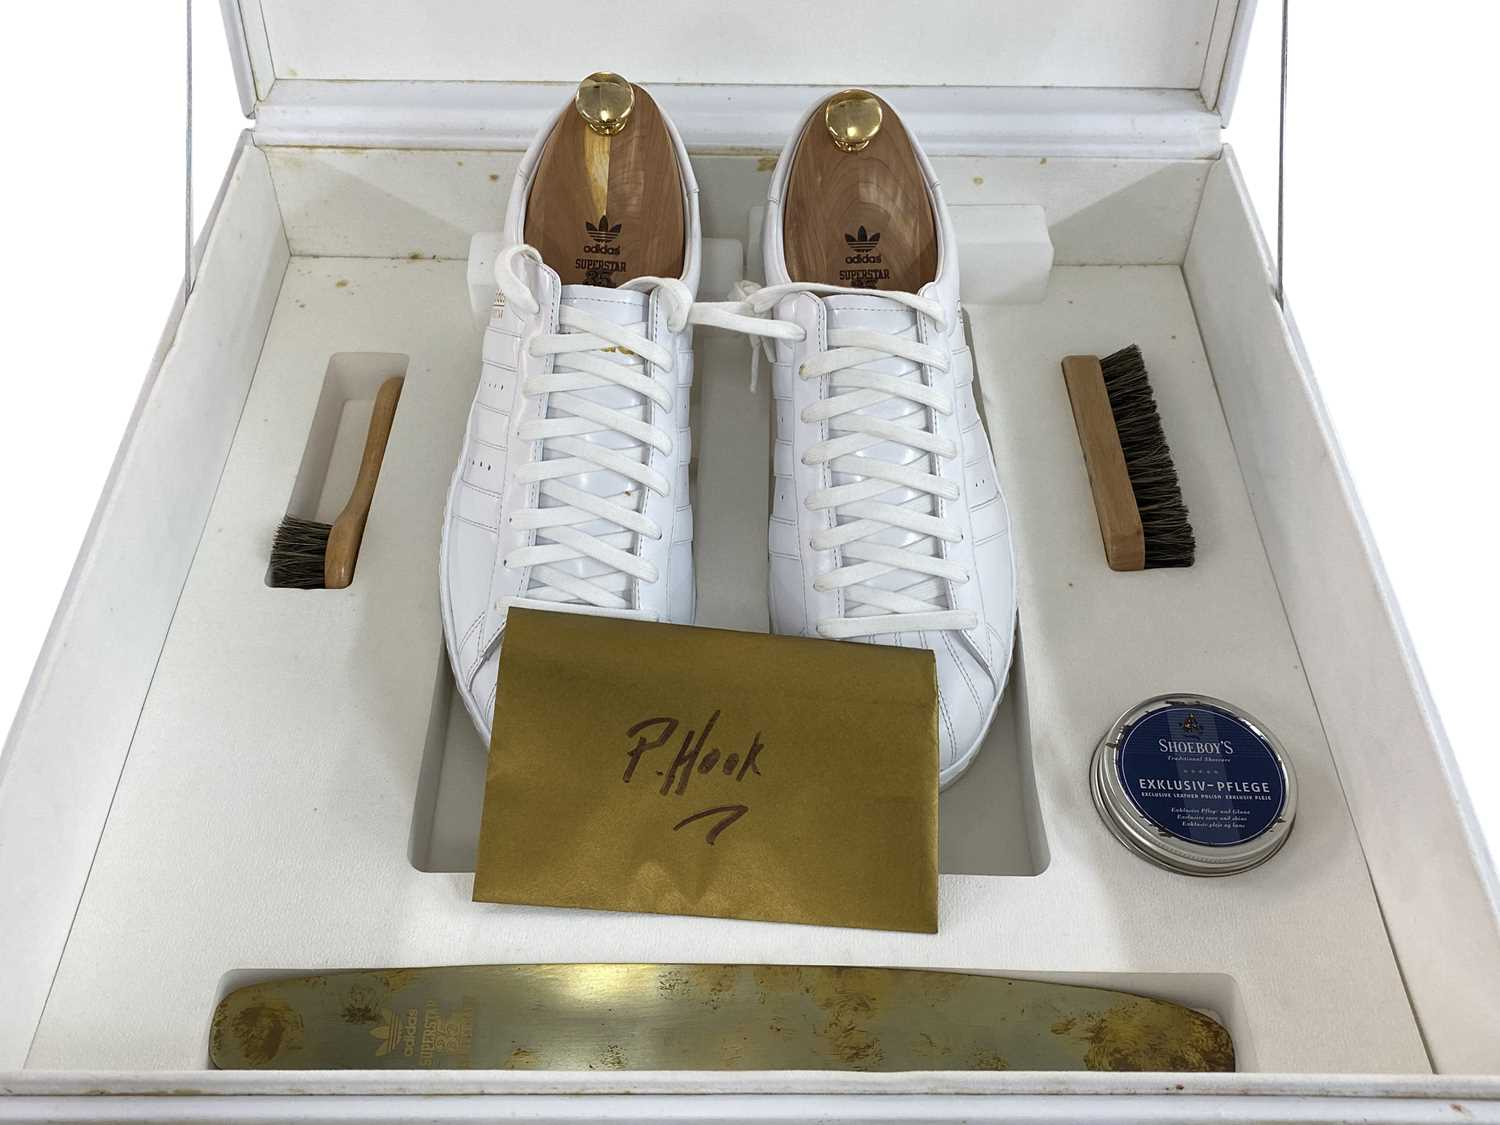 ADIDAS 35TH ANNIVERSARY LIMITED EDITION TRAINERS - Image 2 of 5